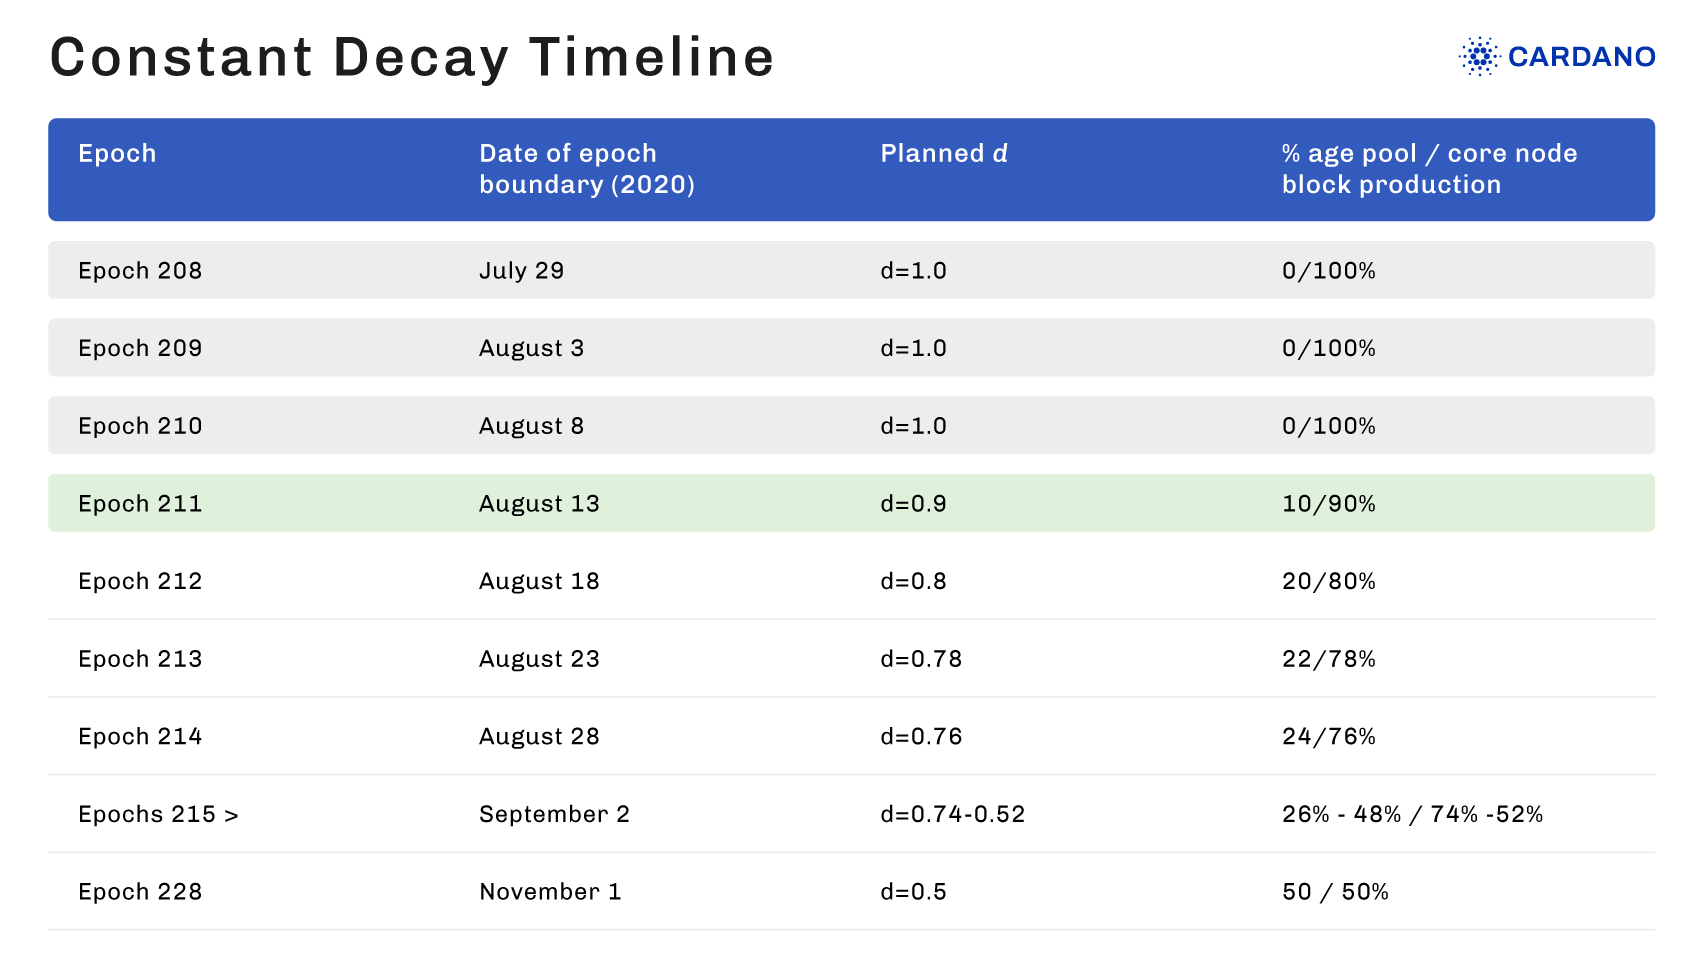 Constant decay timeline